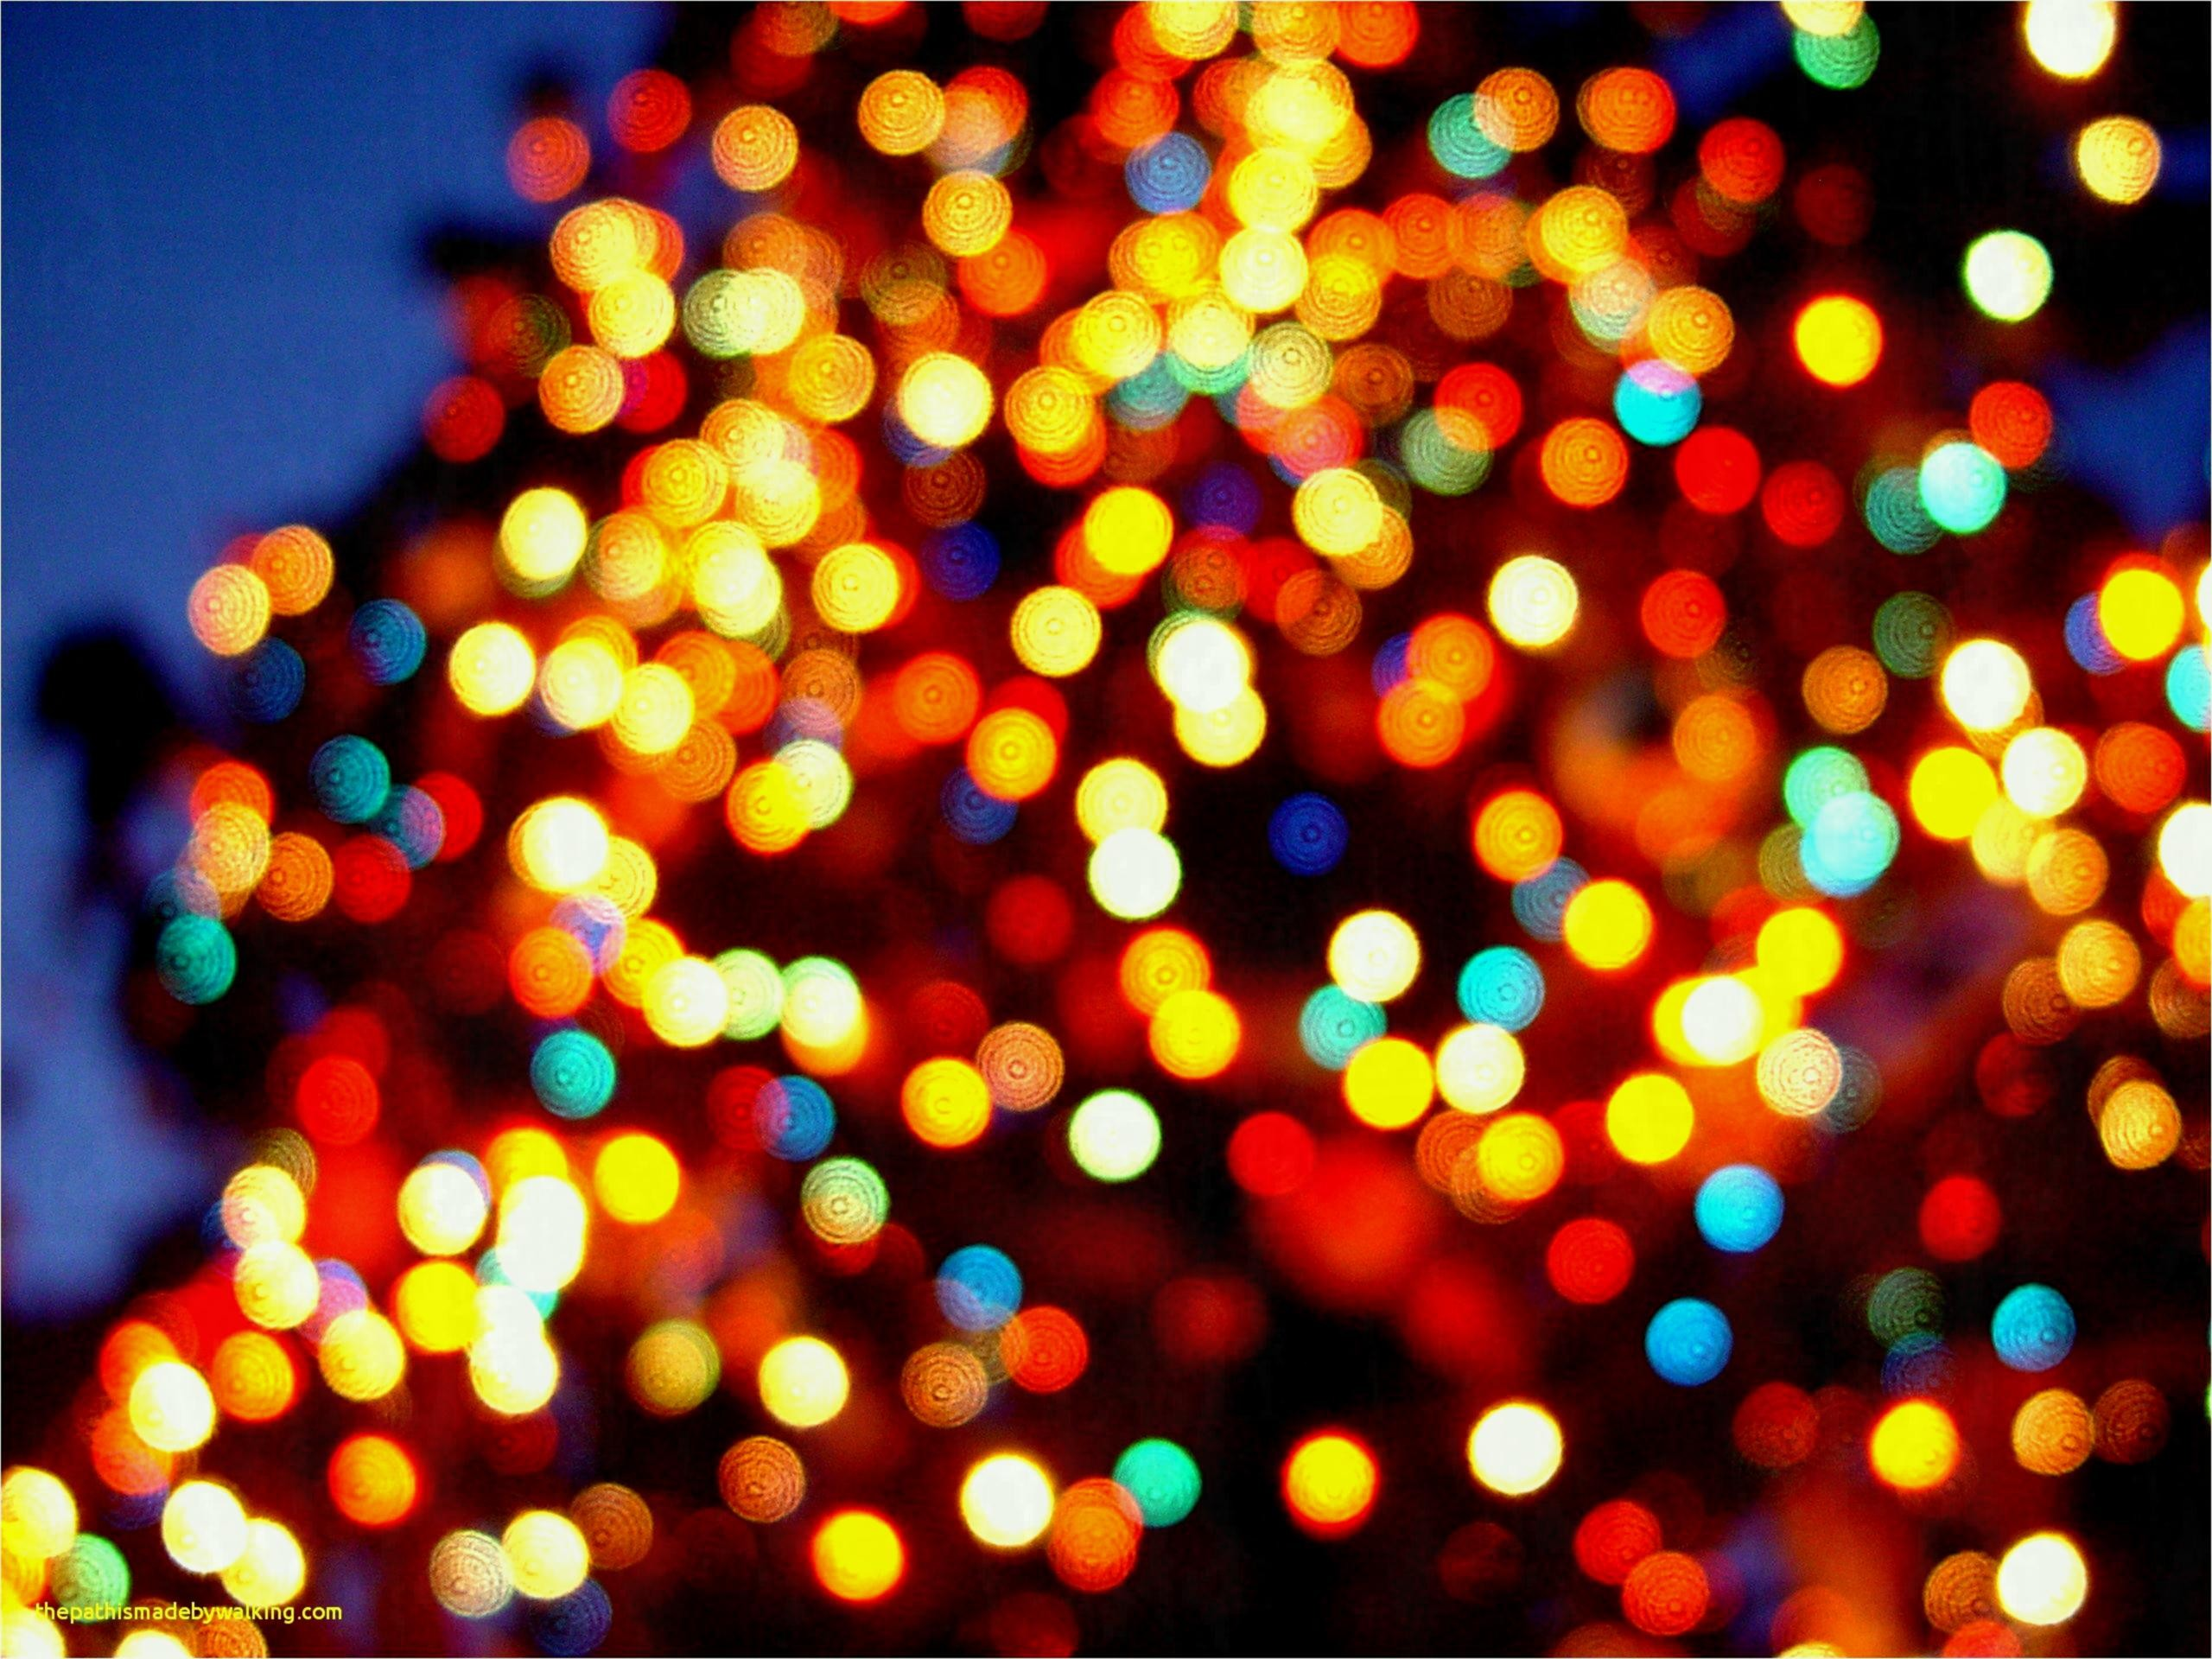 Lovely Fairy Lights Background Tumblr Christmas   Christmas 2560x1920